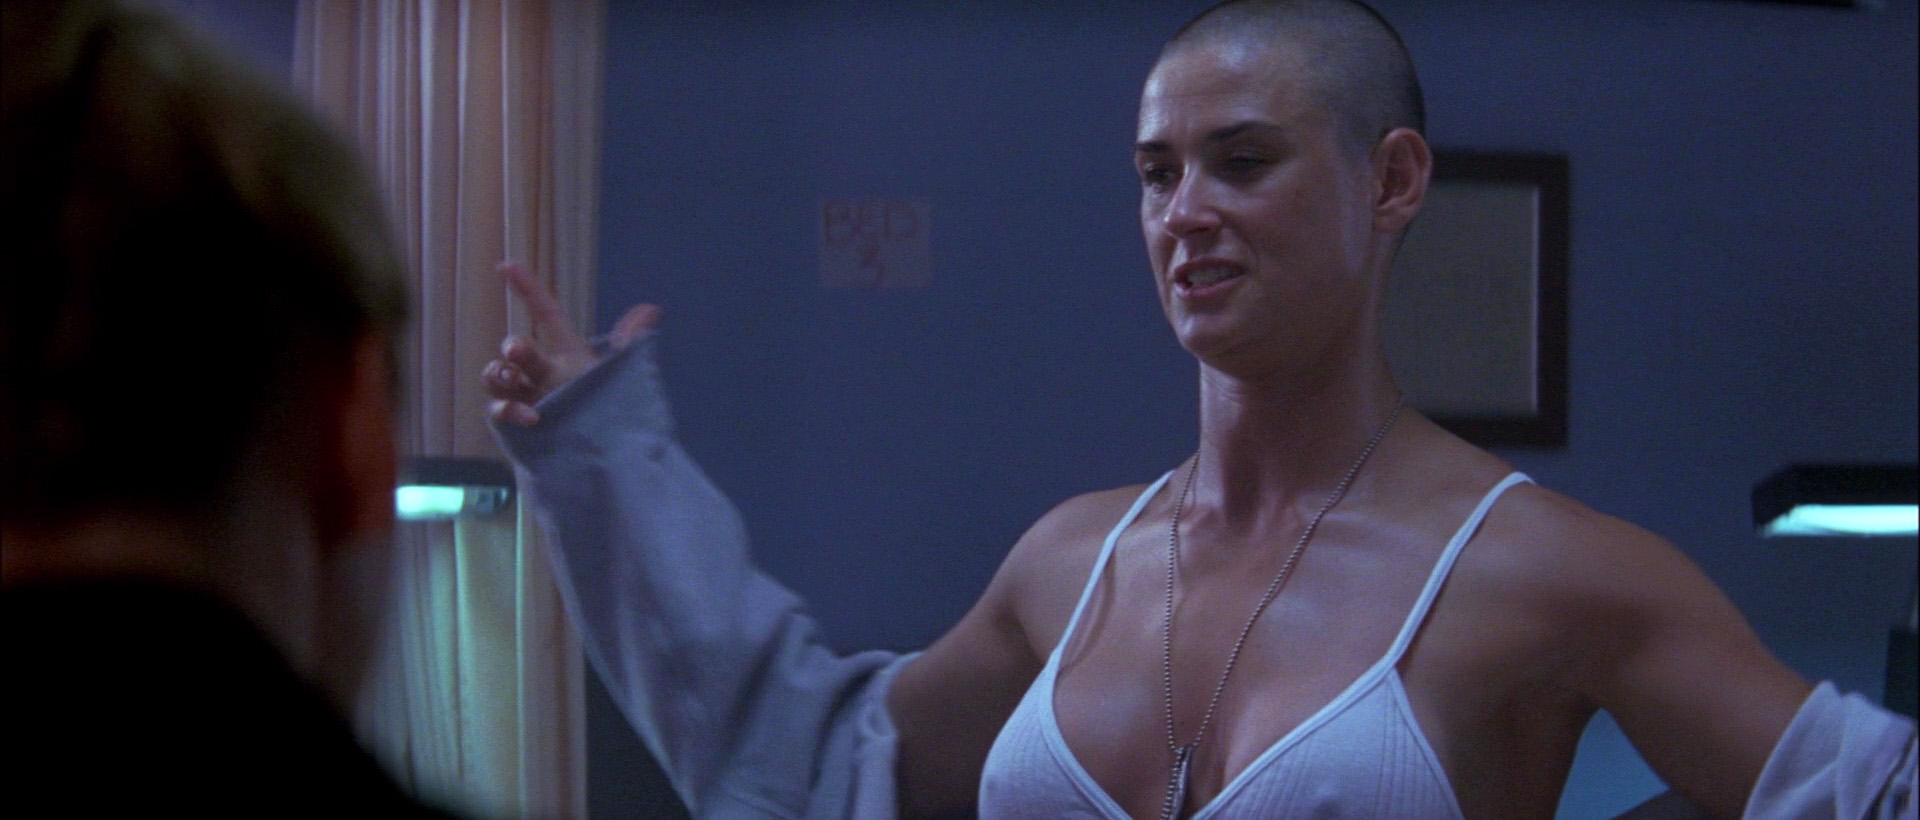 Frontal full naked demi moore #7